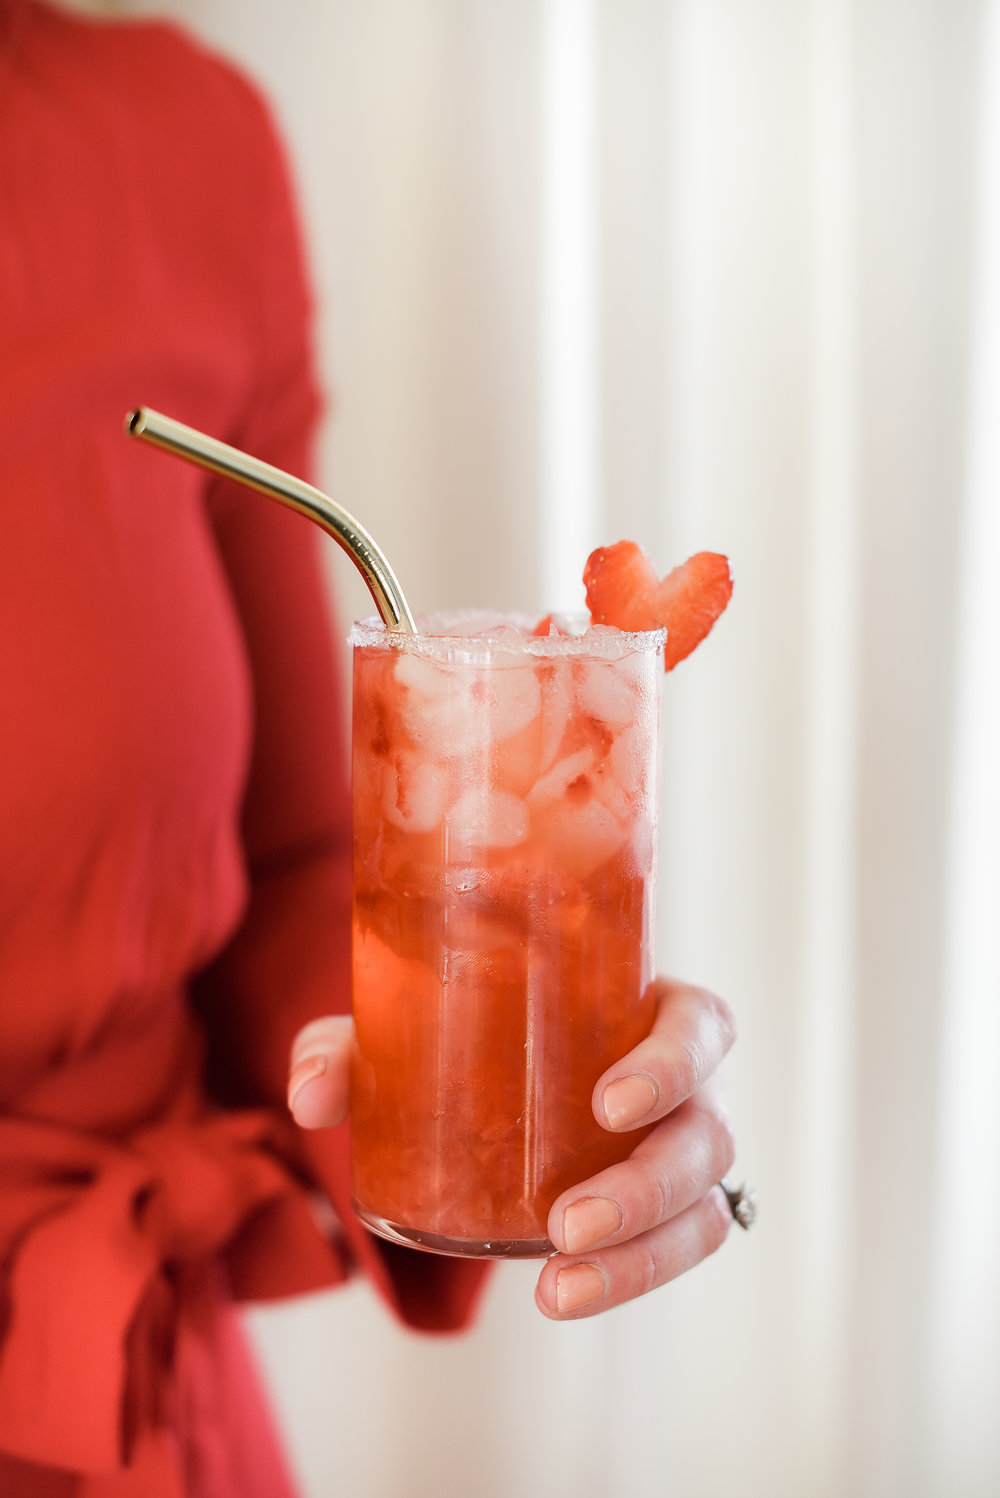 Strawberries and champagne make the perfect Valentine's Day cocktail - cute Valentine's Day cocktail garnish with strawberry heart | #valentinesday #cocktailrecipes